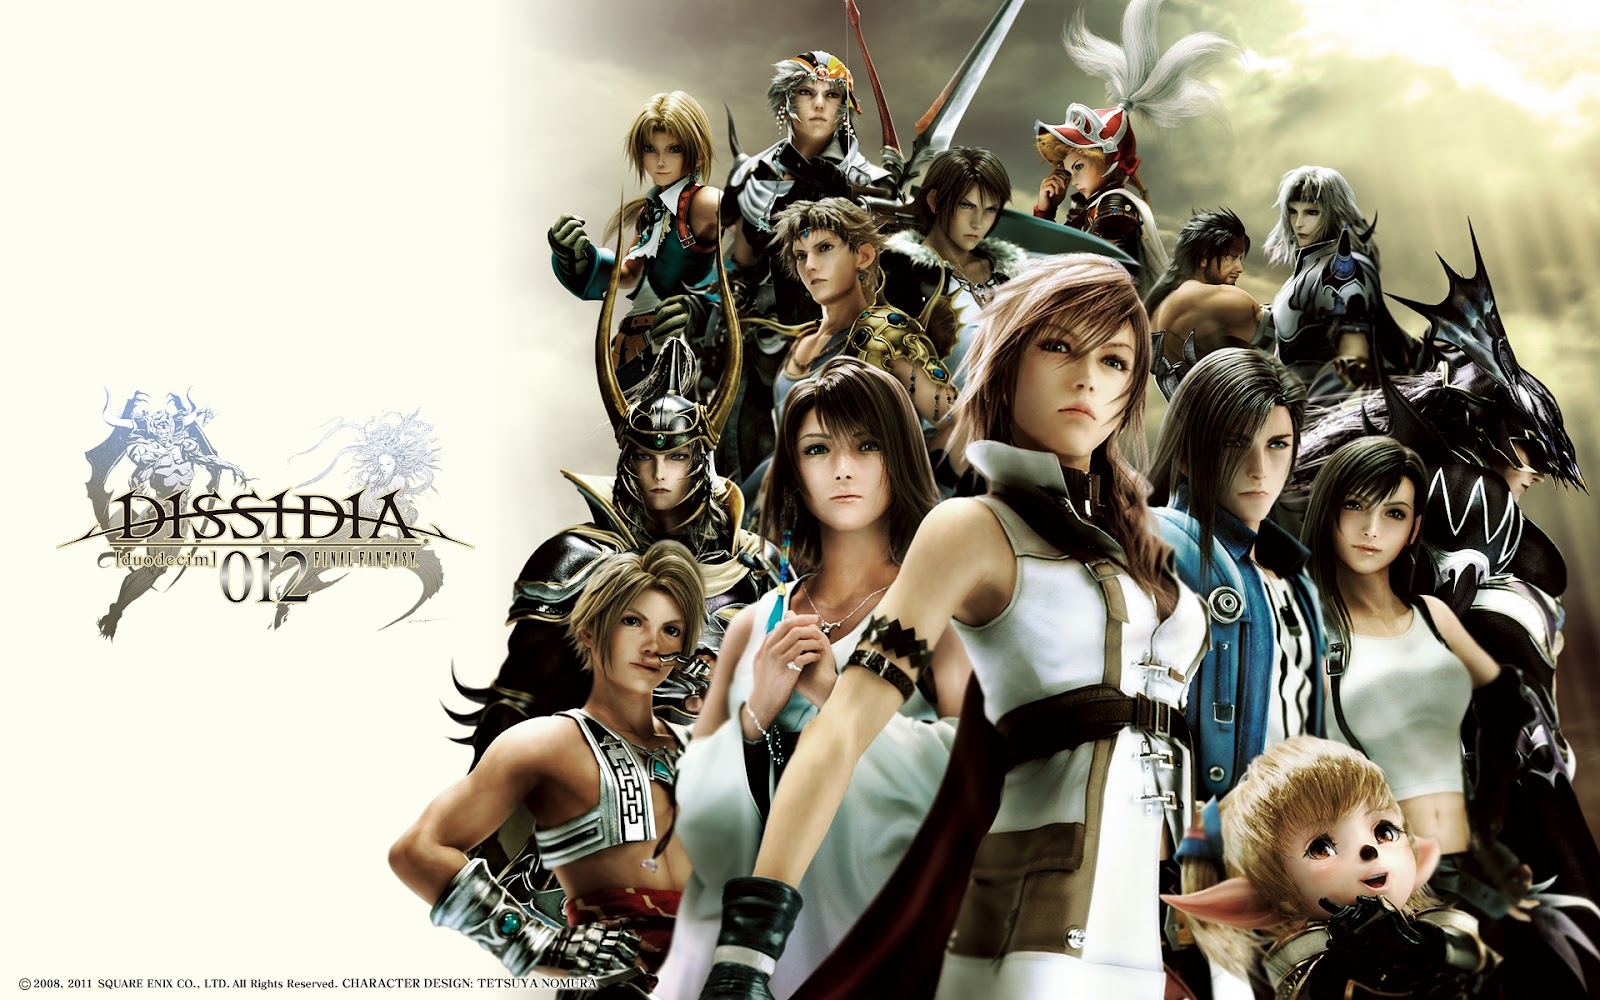 http://2.bp.blogspot.com/-yR3TSMxO3xI/UAUmOJcfyoI/AAAAAAAABQ0/9Vtaj_jPhm8/s1600/final+fantasy+dissidia+012+ff+wallpaper+background+square+enix+action+jrpg+japanese+role+playing+game.jpg